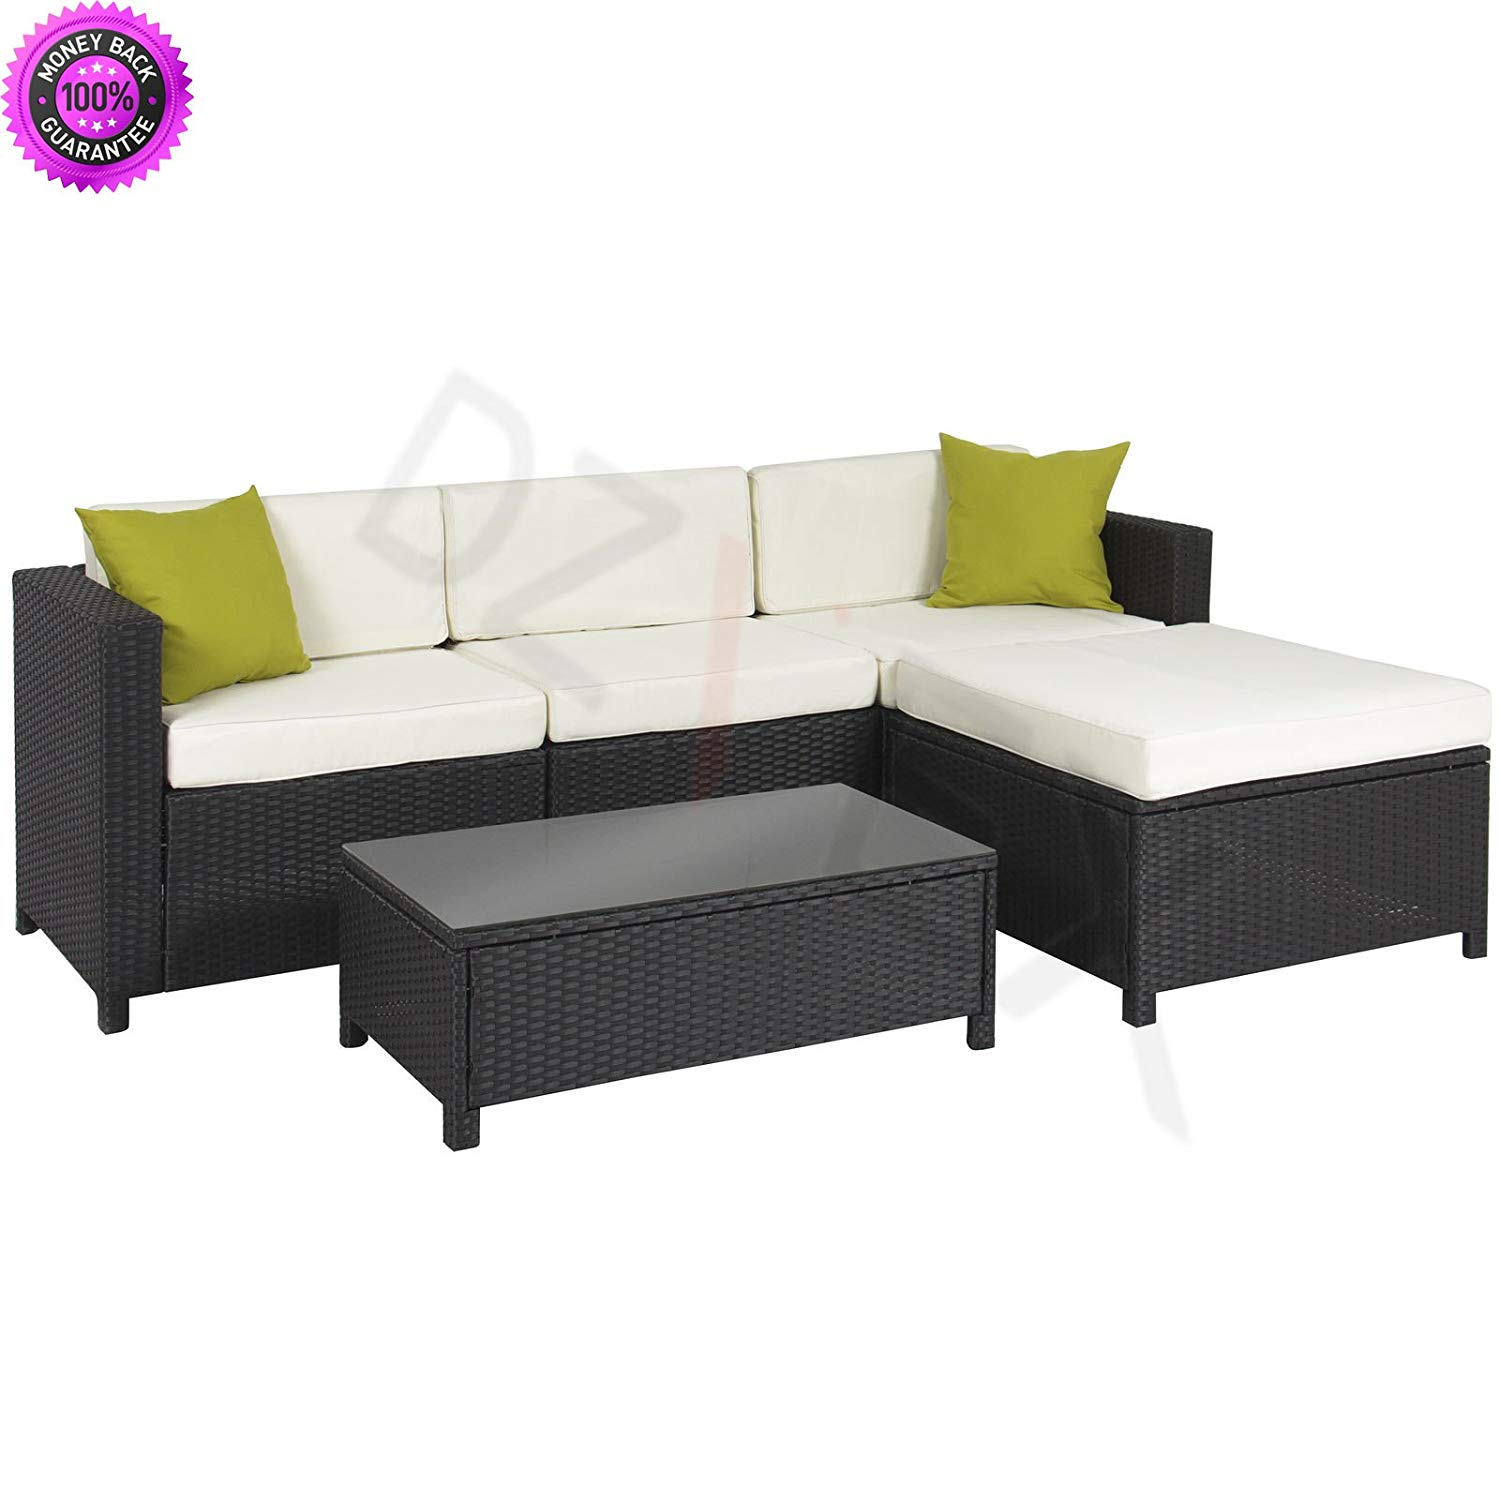 DzVeX 5PC Rattan Wicker Aluminum Frame Sofa Set Cushioned Sectional Outdoor Patio And patio furniture clearance sale patio furniture sets patio furniture lowes discount outdoor furniture patio